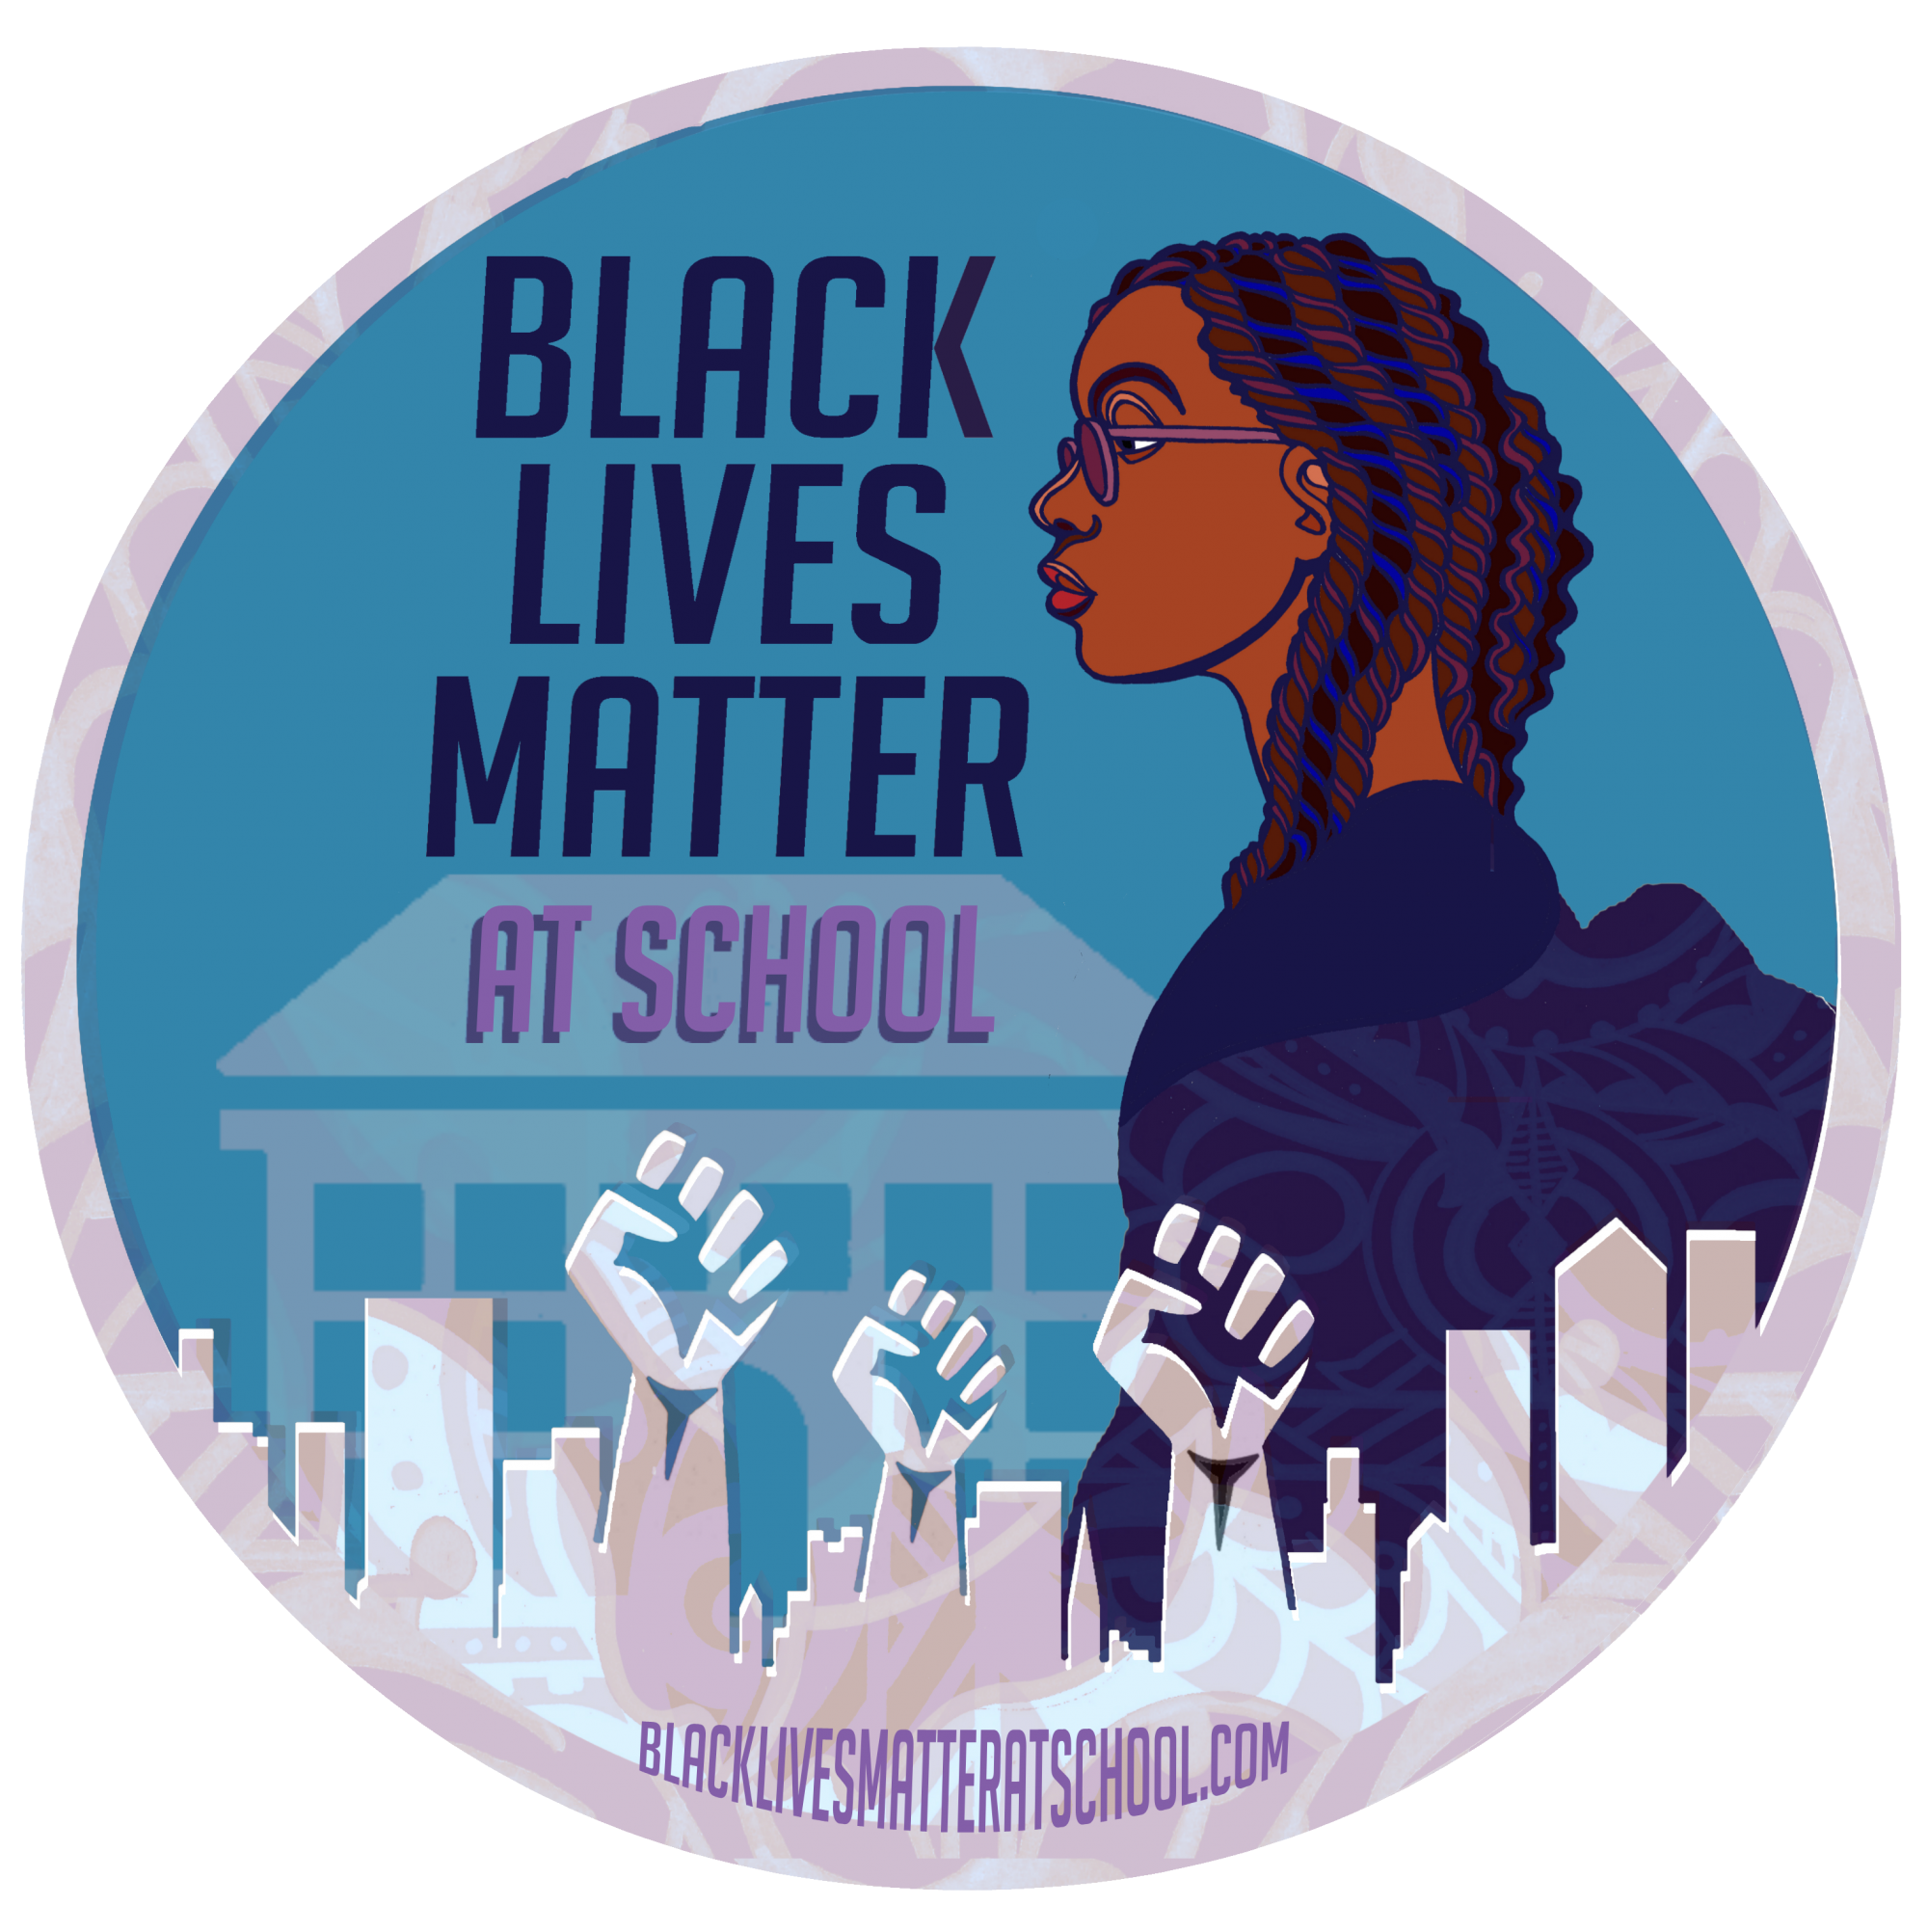 Black Lives Matter At School 3 Ideas For Teaching Spreadsheet Fundamentals The Data Are Alright